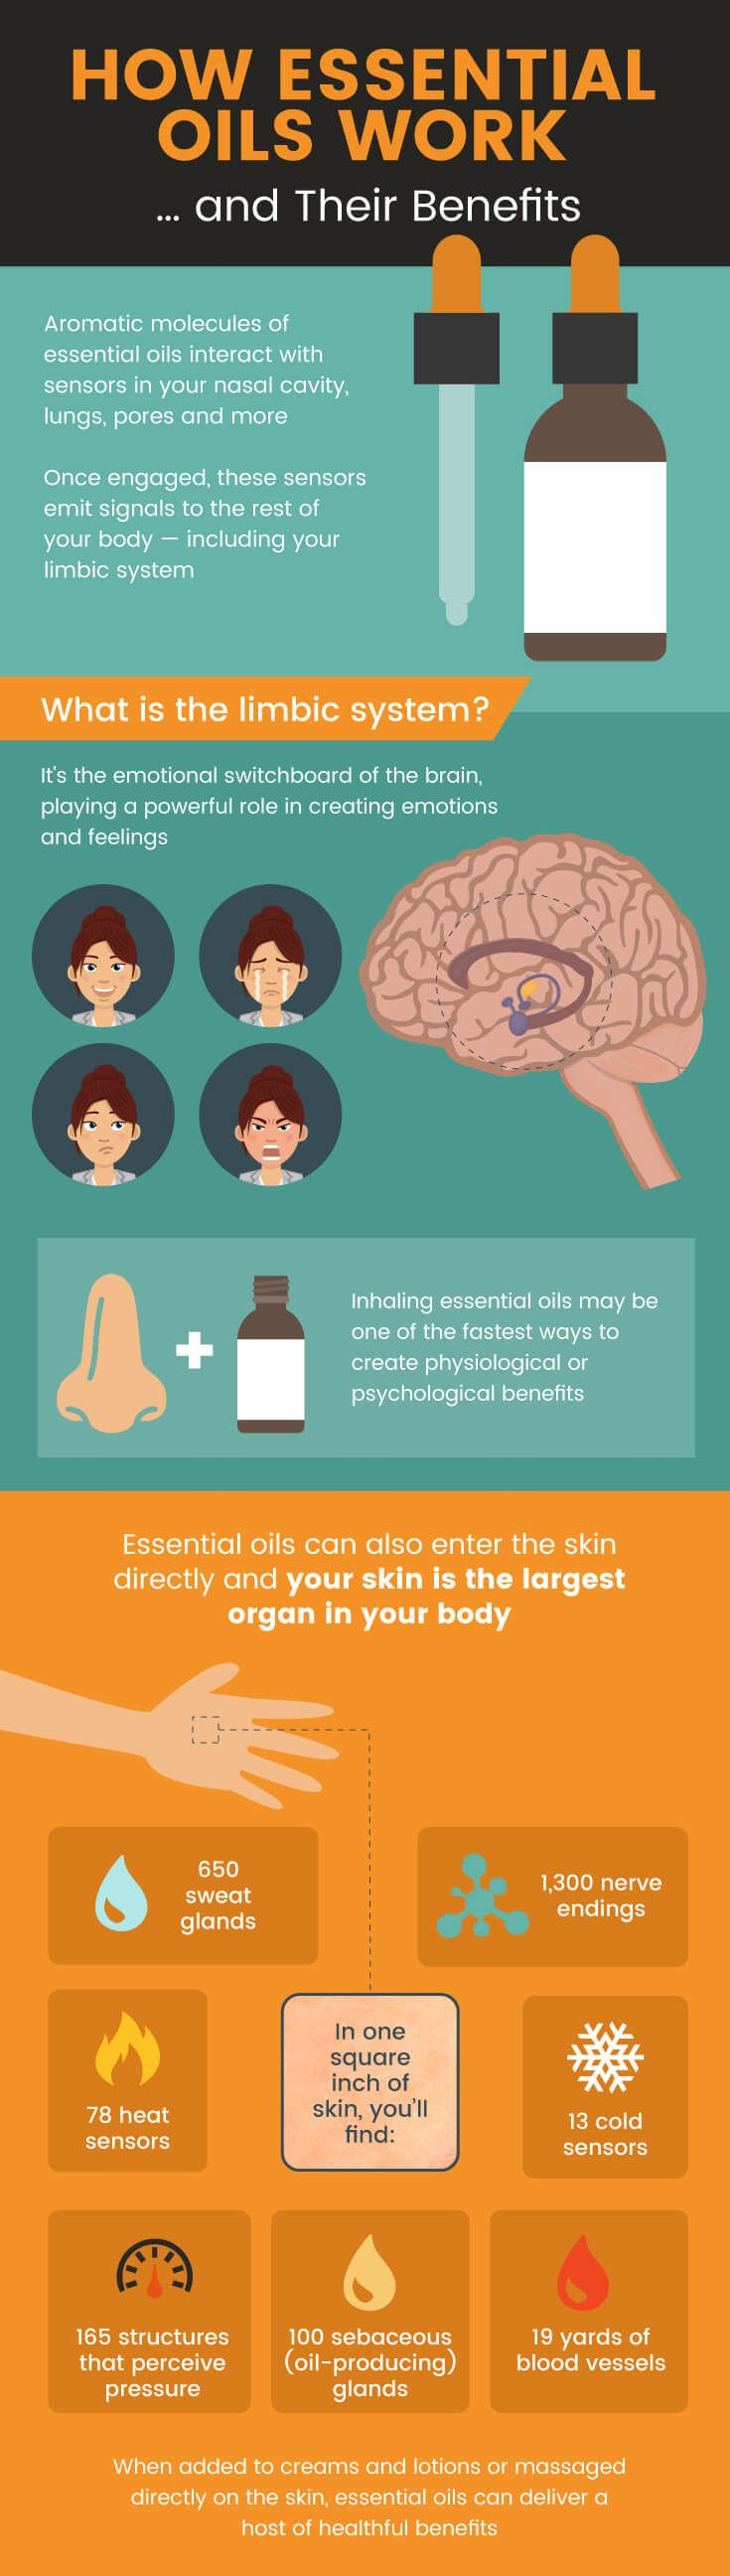 The compounds in essential oils can get into our cells - even crossing the blood-brain barrier! - to provide them with extra support.